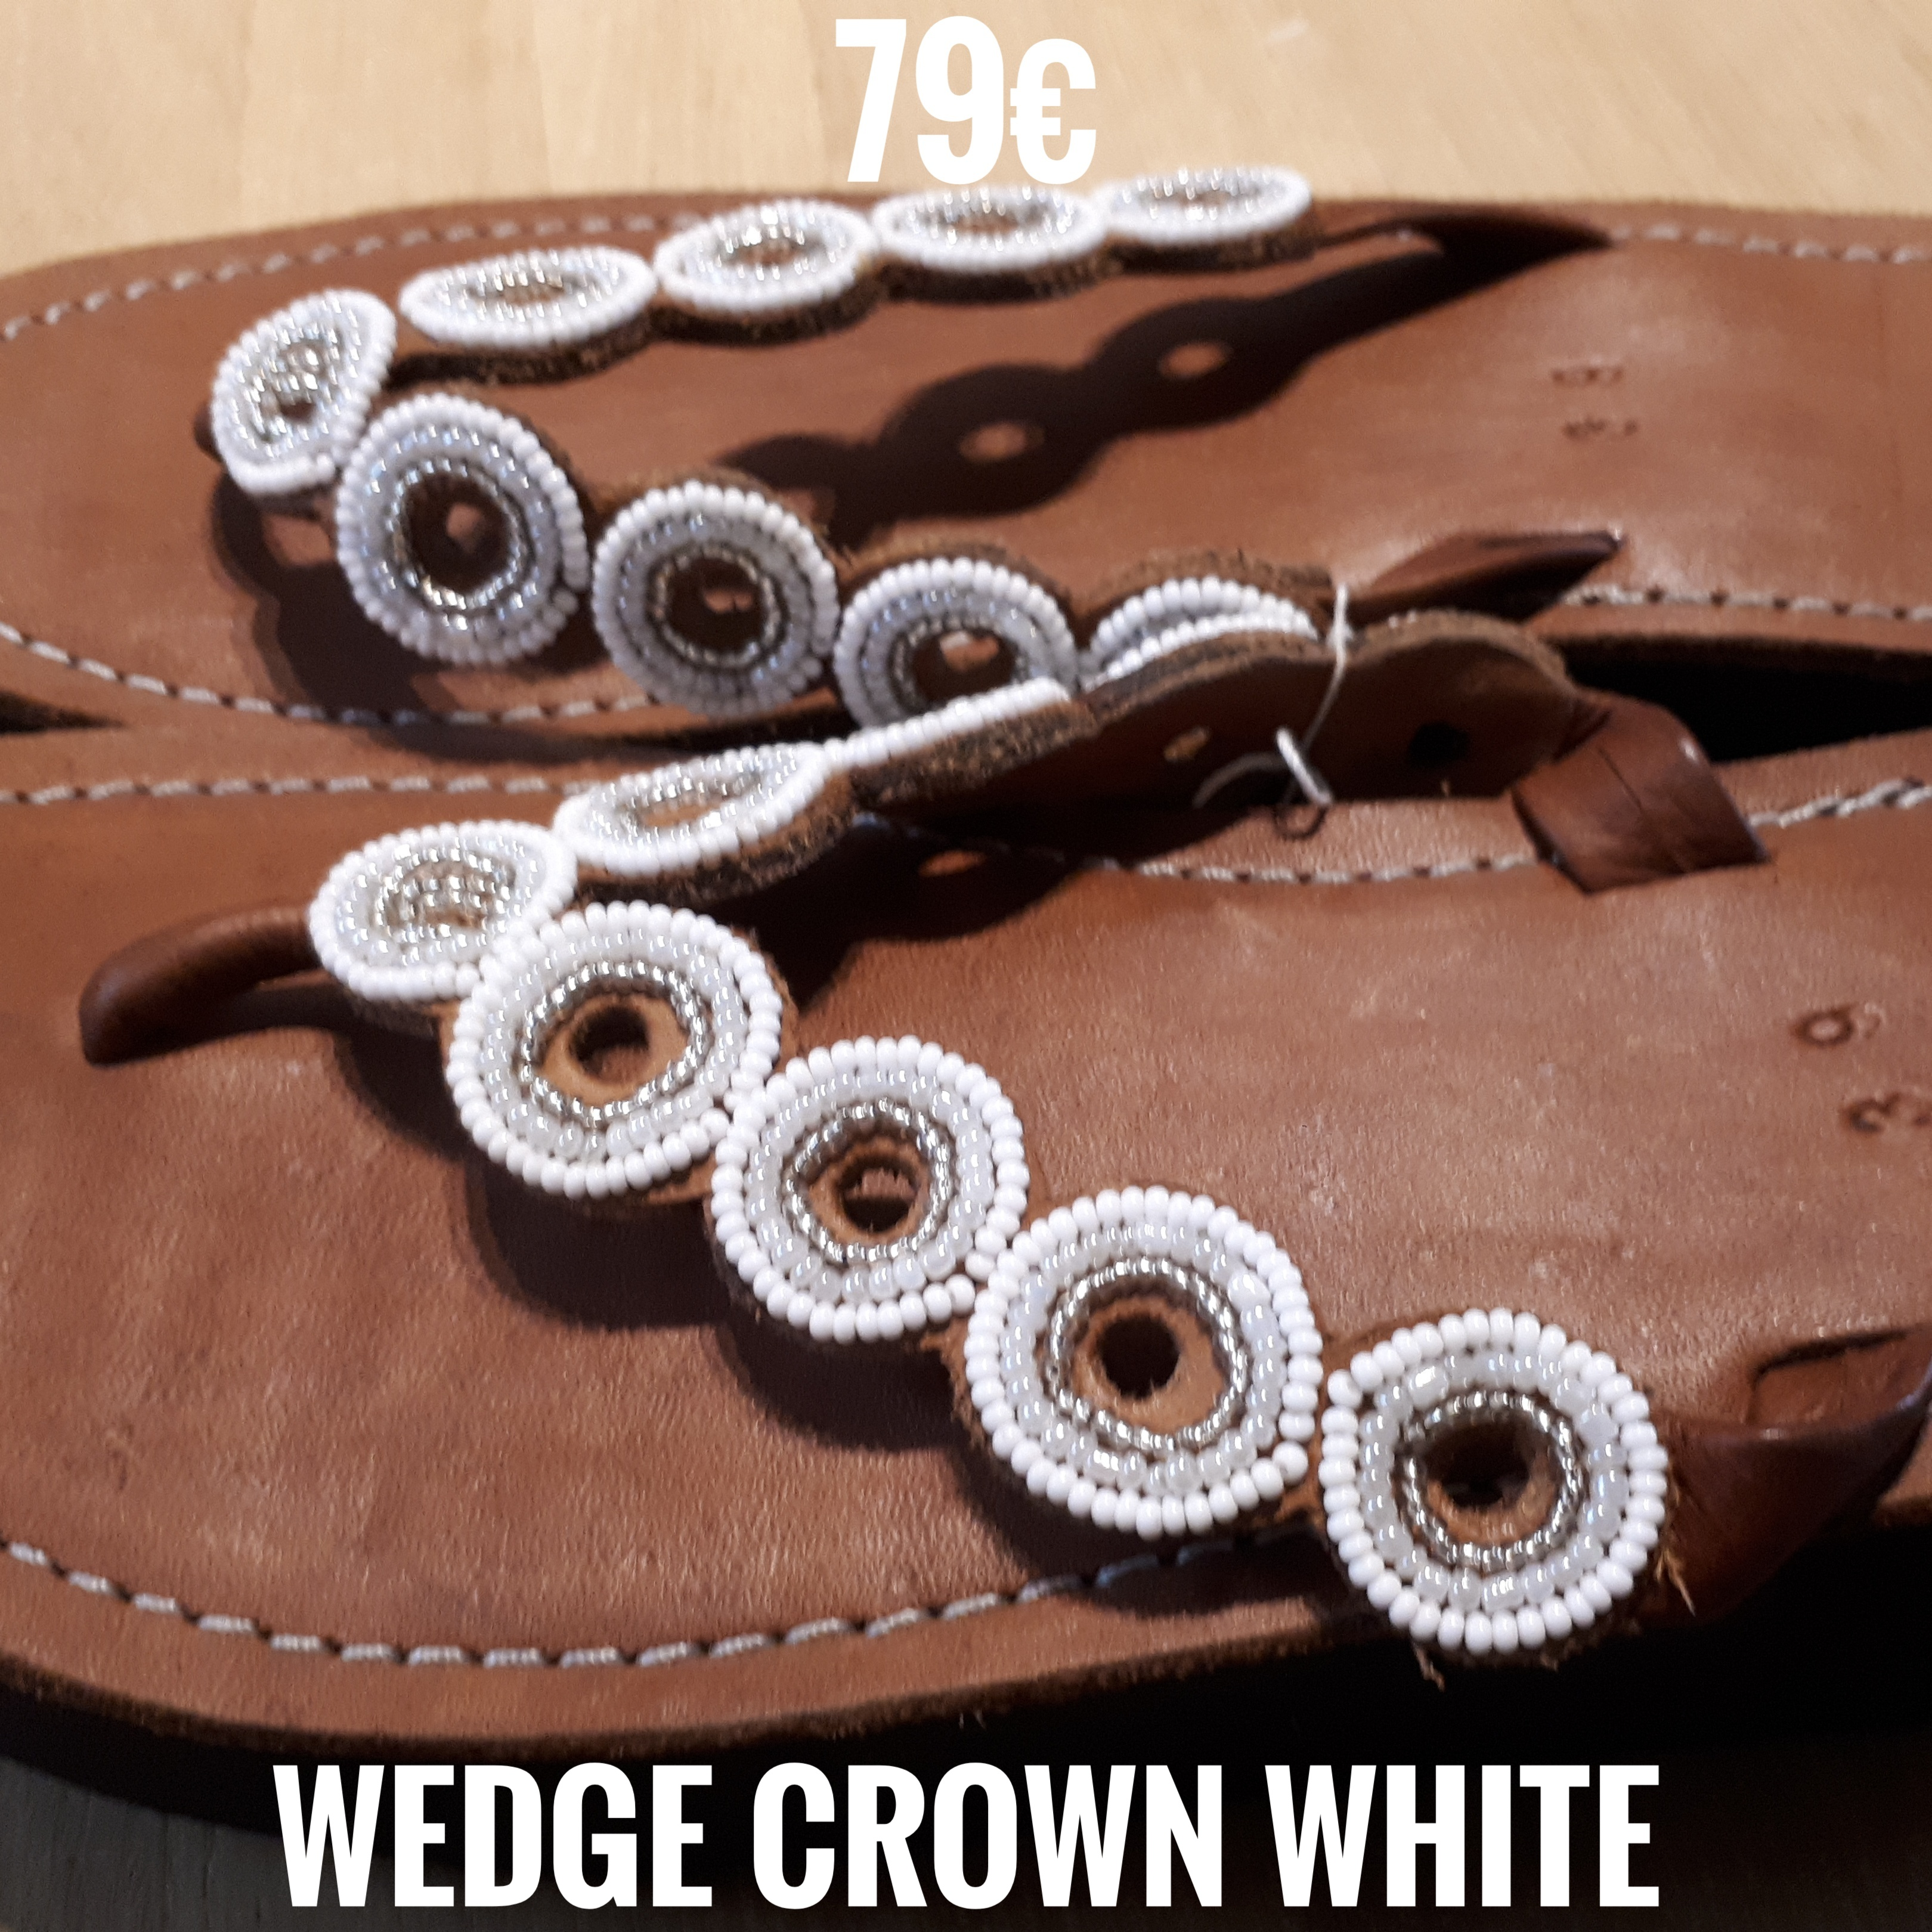 Wedge Crown White